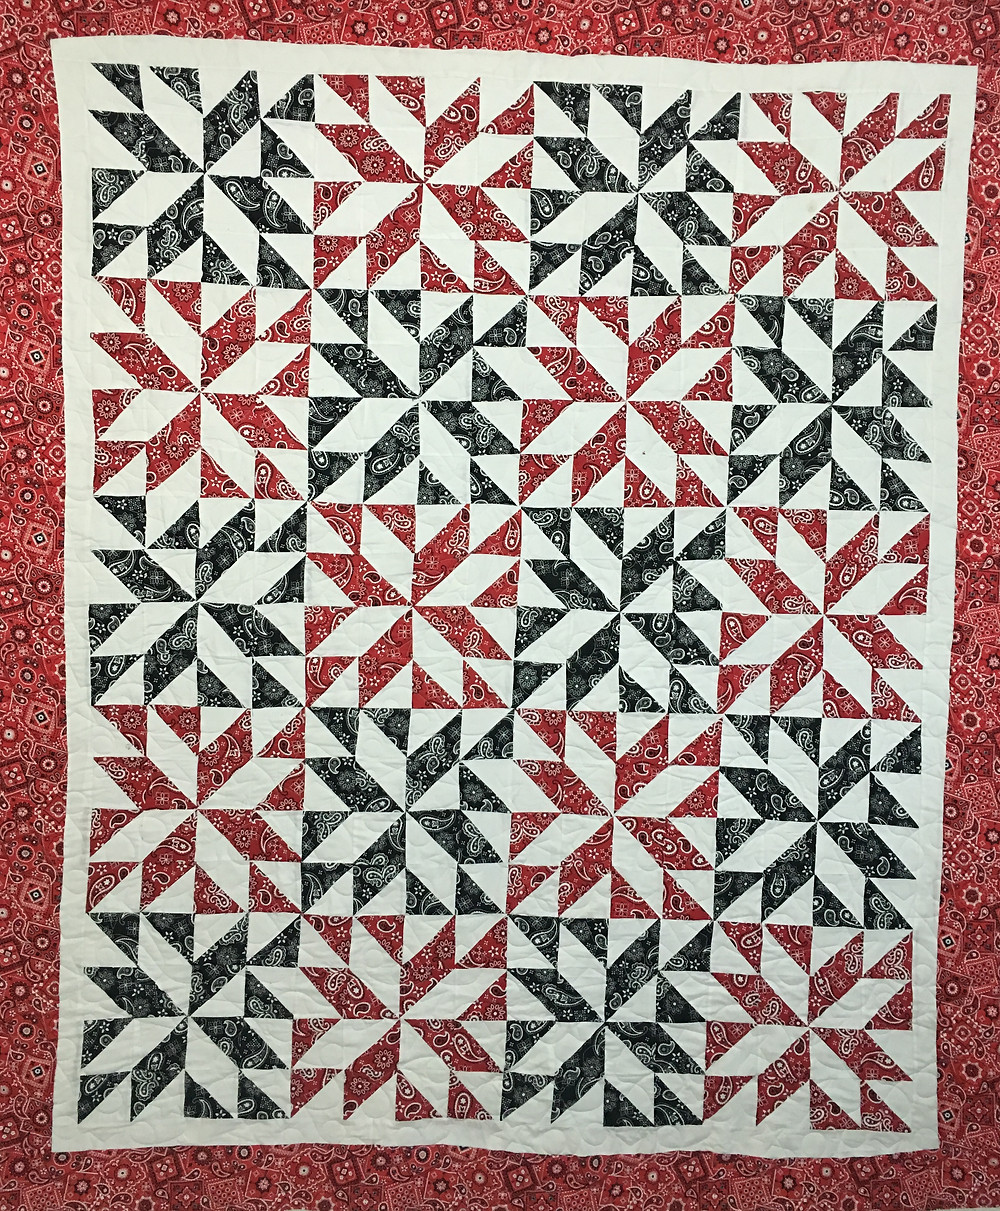 Red and Black Stars Quilt by Jefferson Sutton